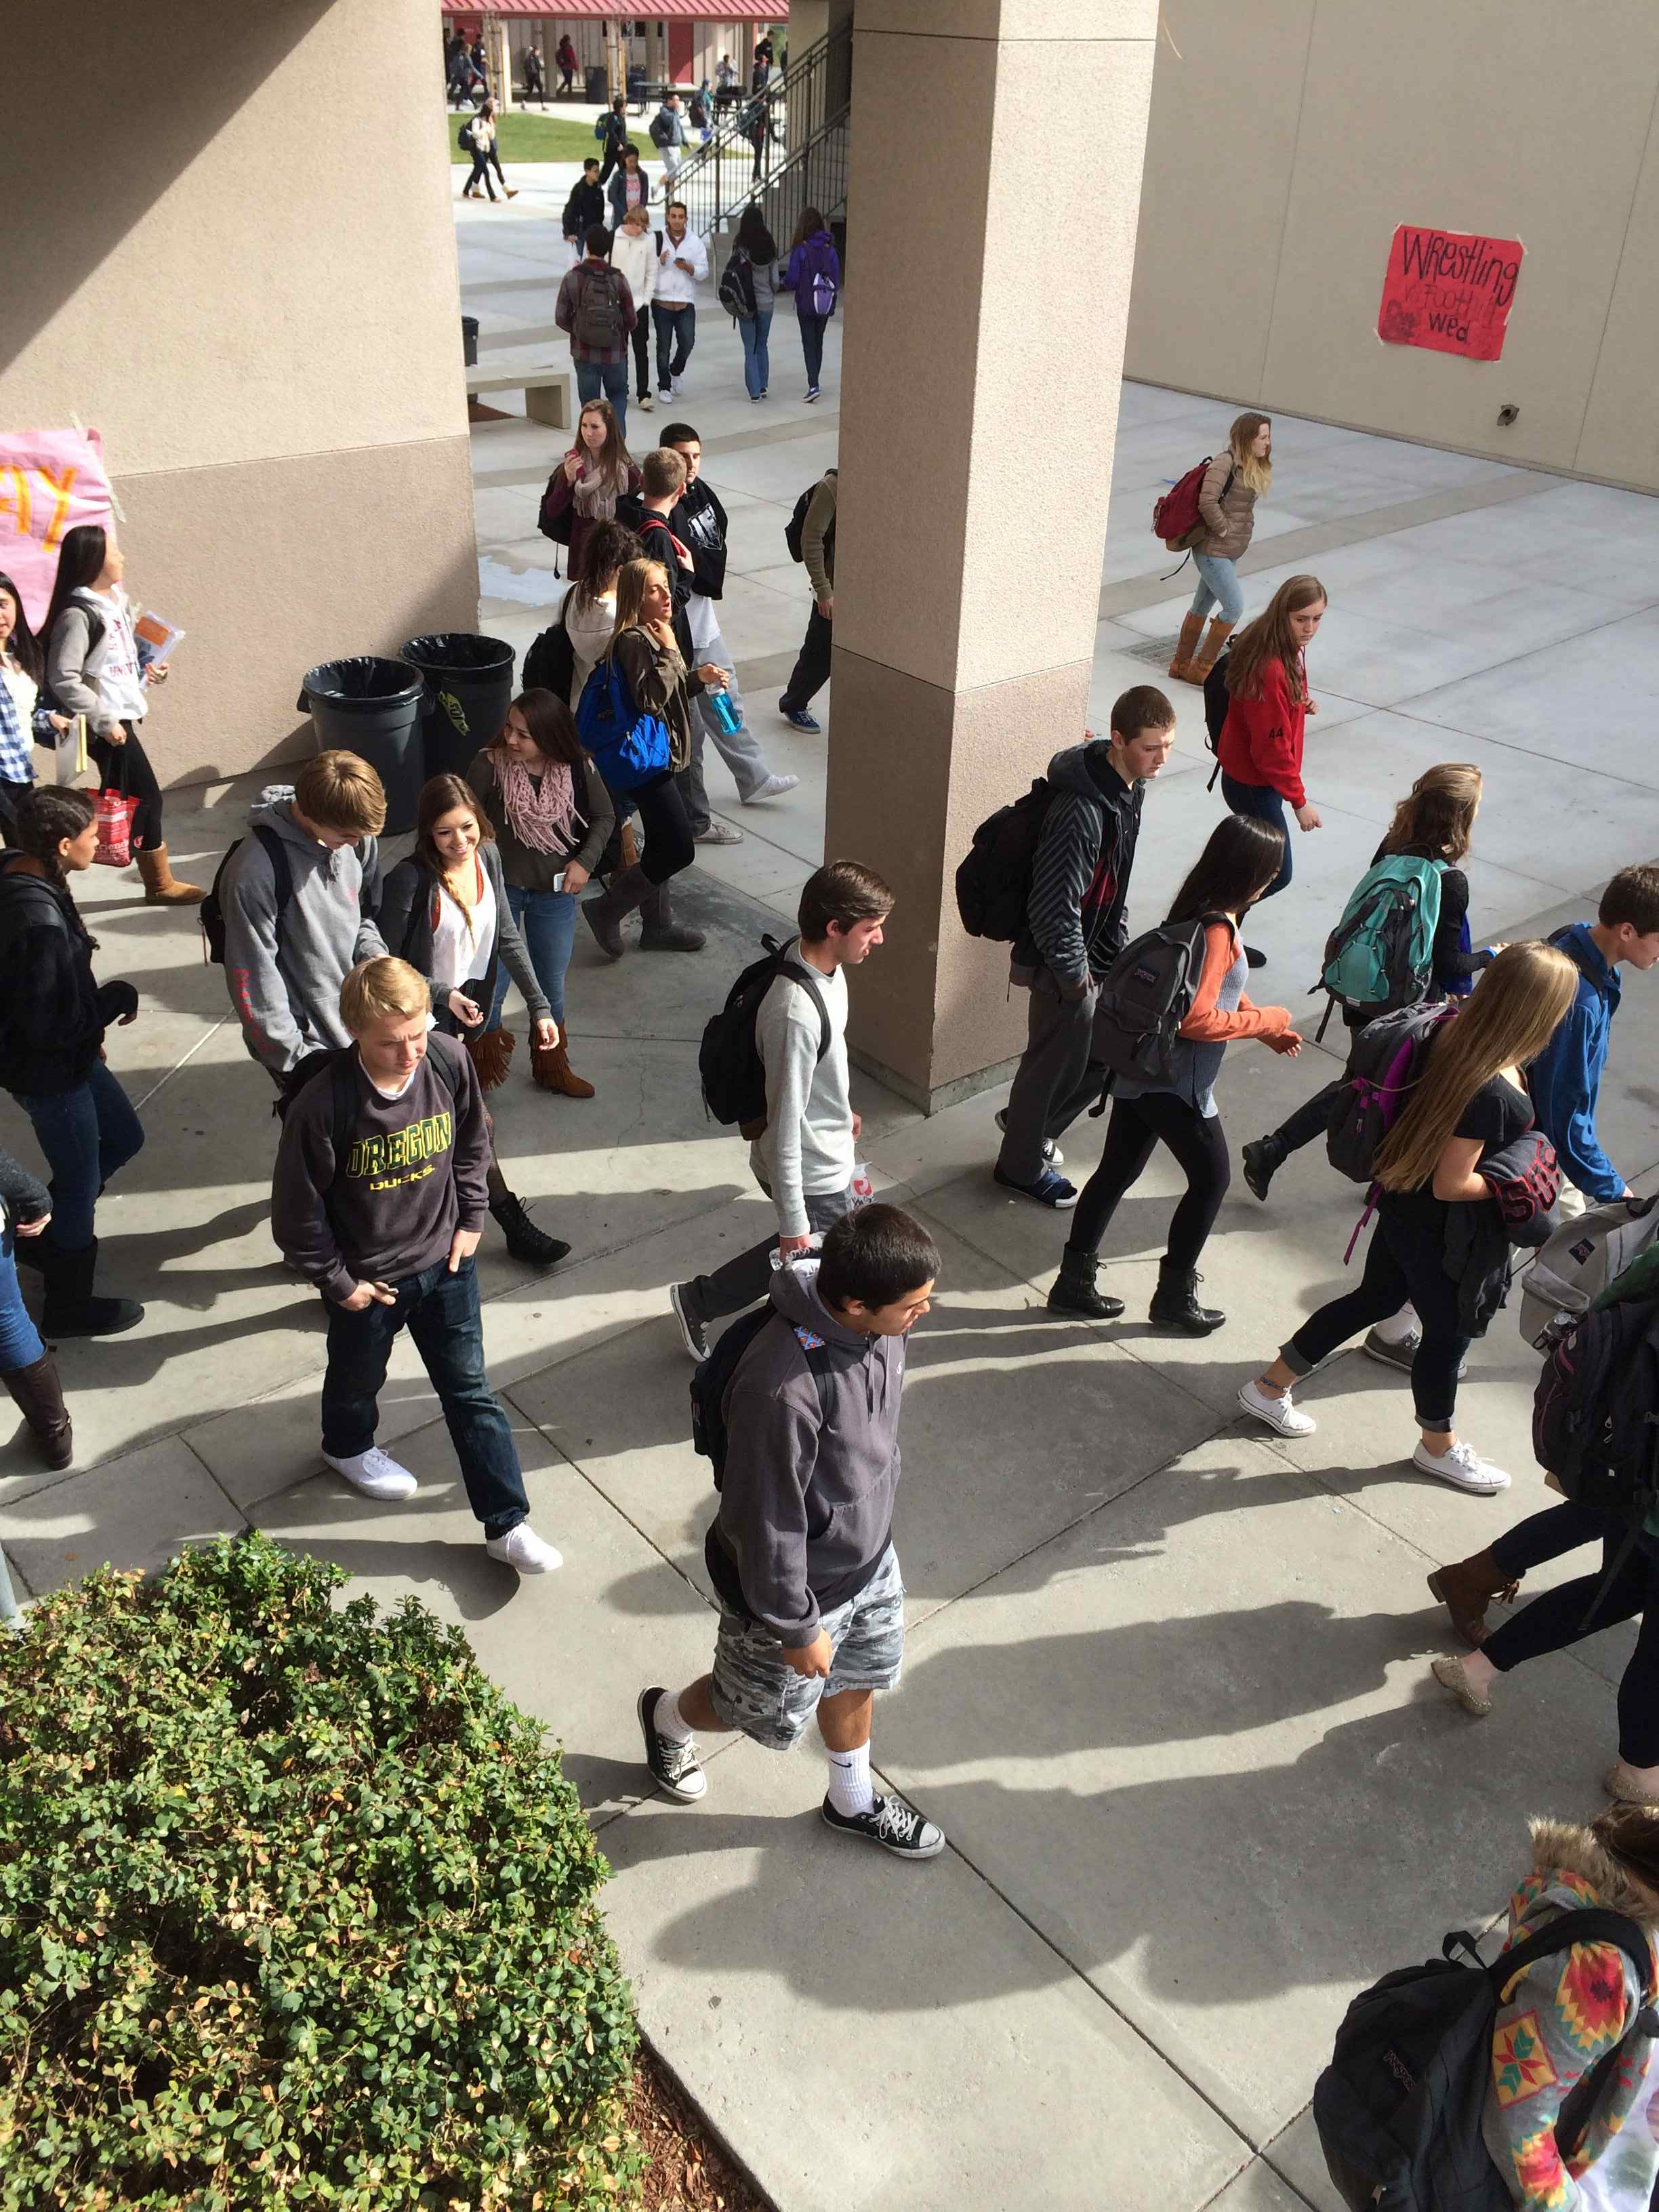 Walking through the halls is difficult during passing period, but during a fire alarm it can be worse. All students and staff evacuate the buildings and that can make it hard to move quickly.